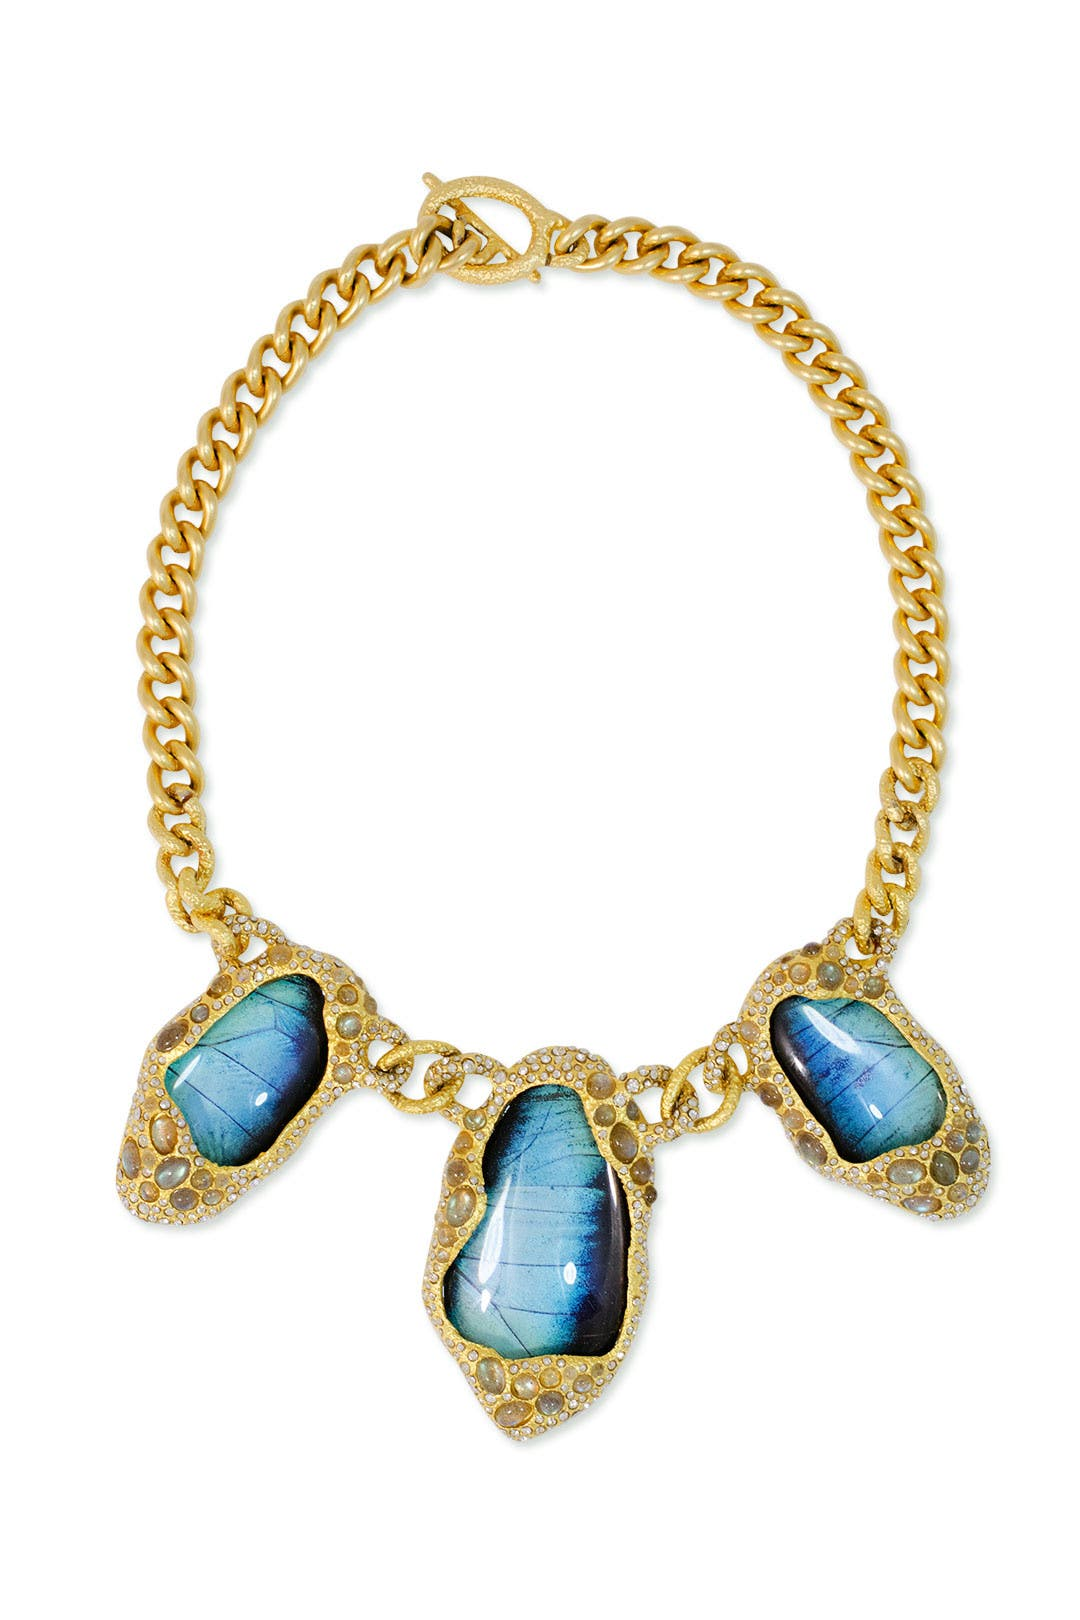 Papillon Necklace by Alexis Bittar